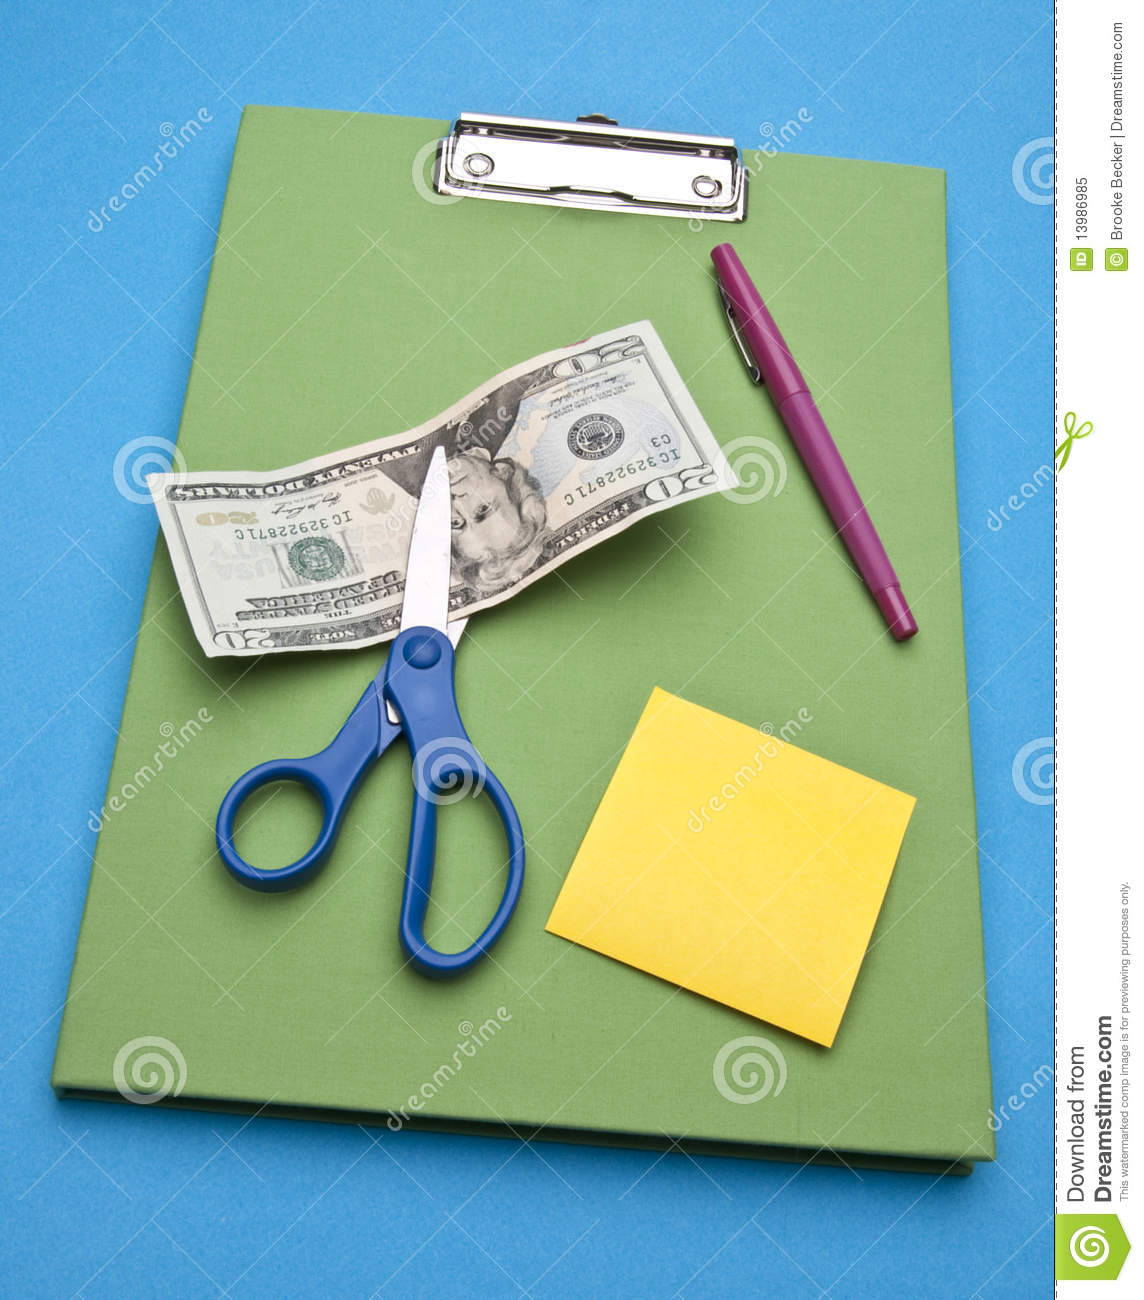 Cutting costs royalty free stock photo image 13986985 - How to save money when purchasing office supplies ...